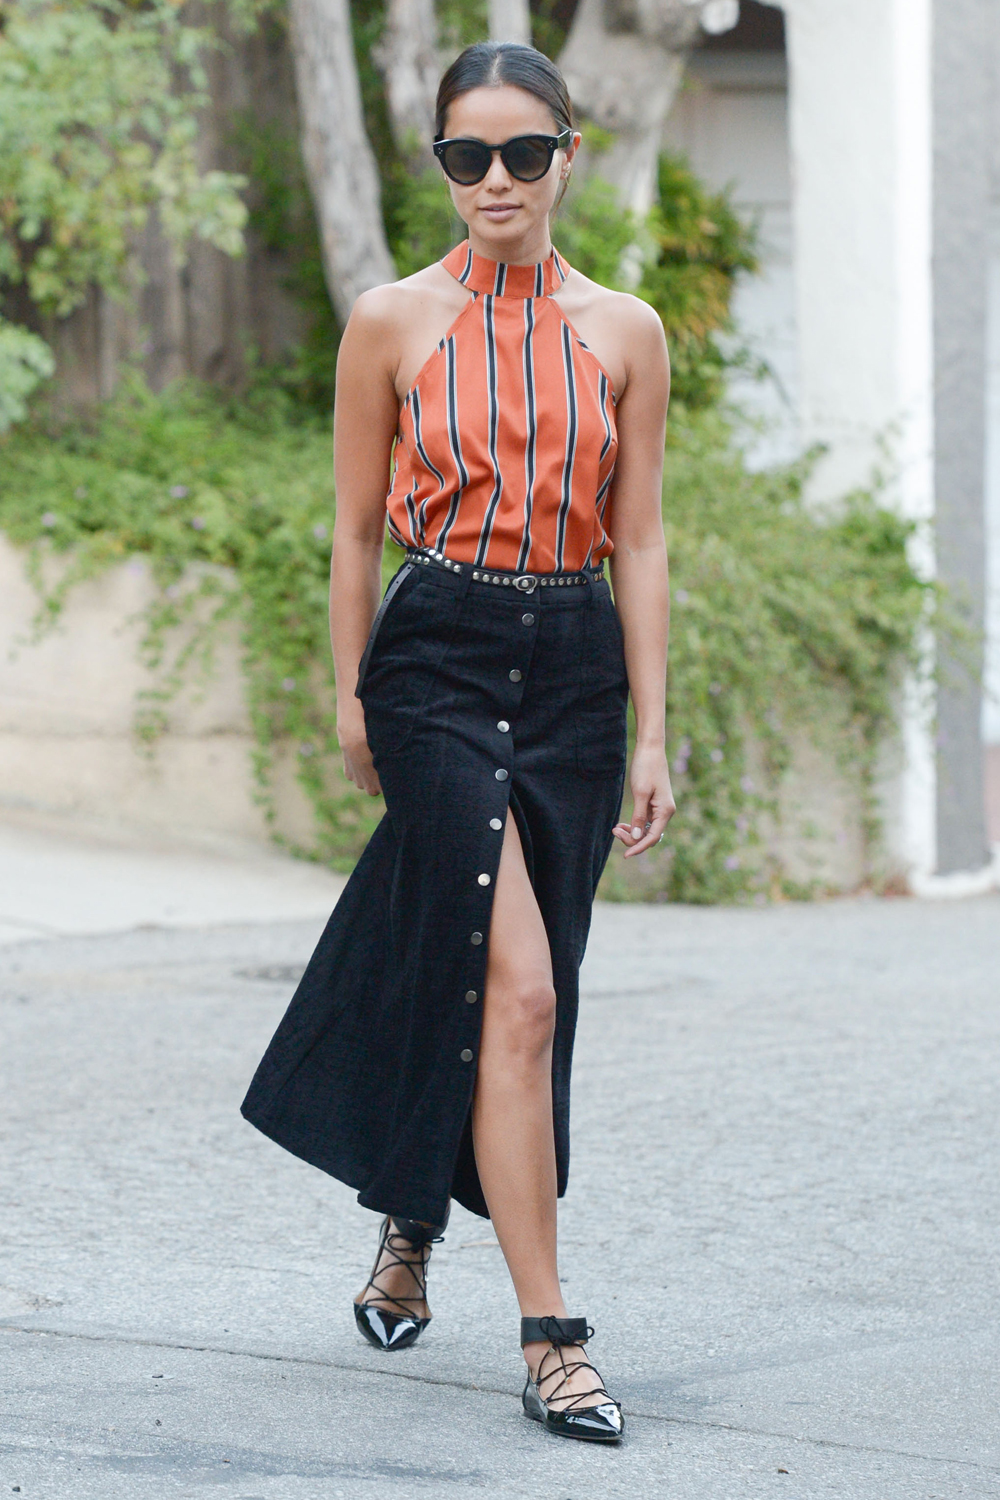 30 pointed flats to take you from day to night